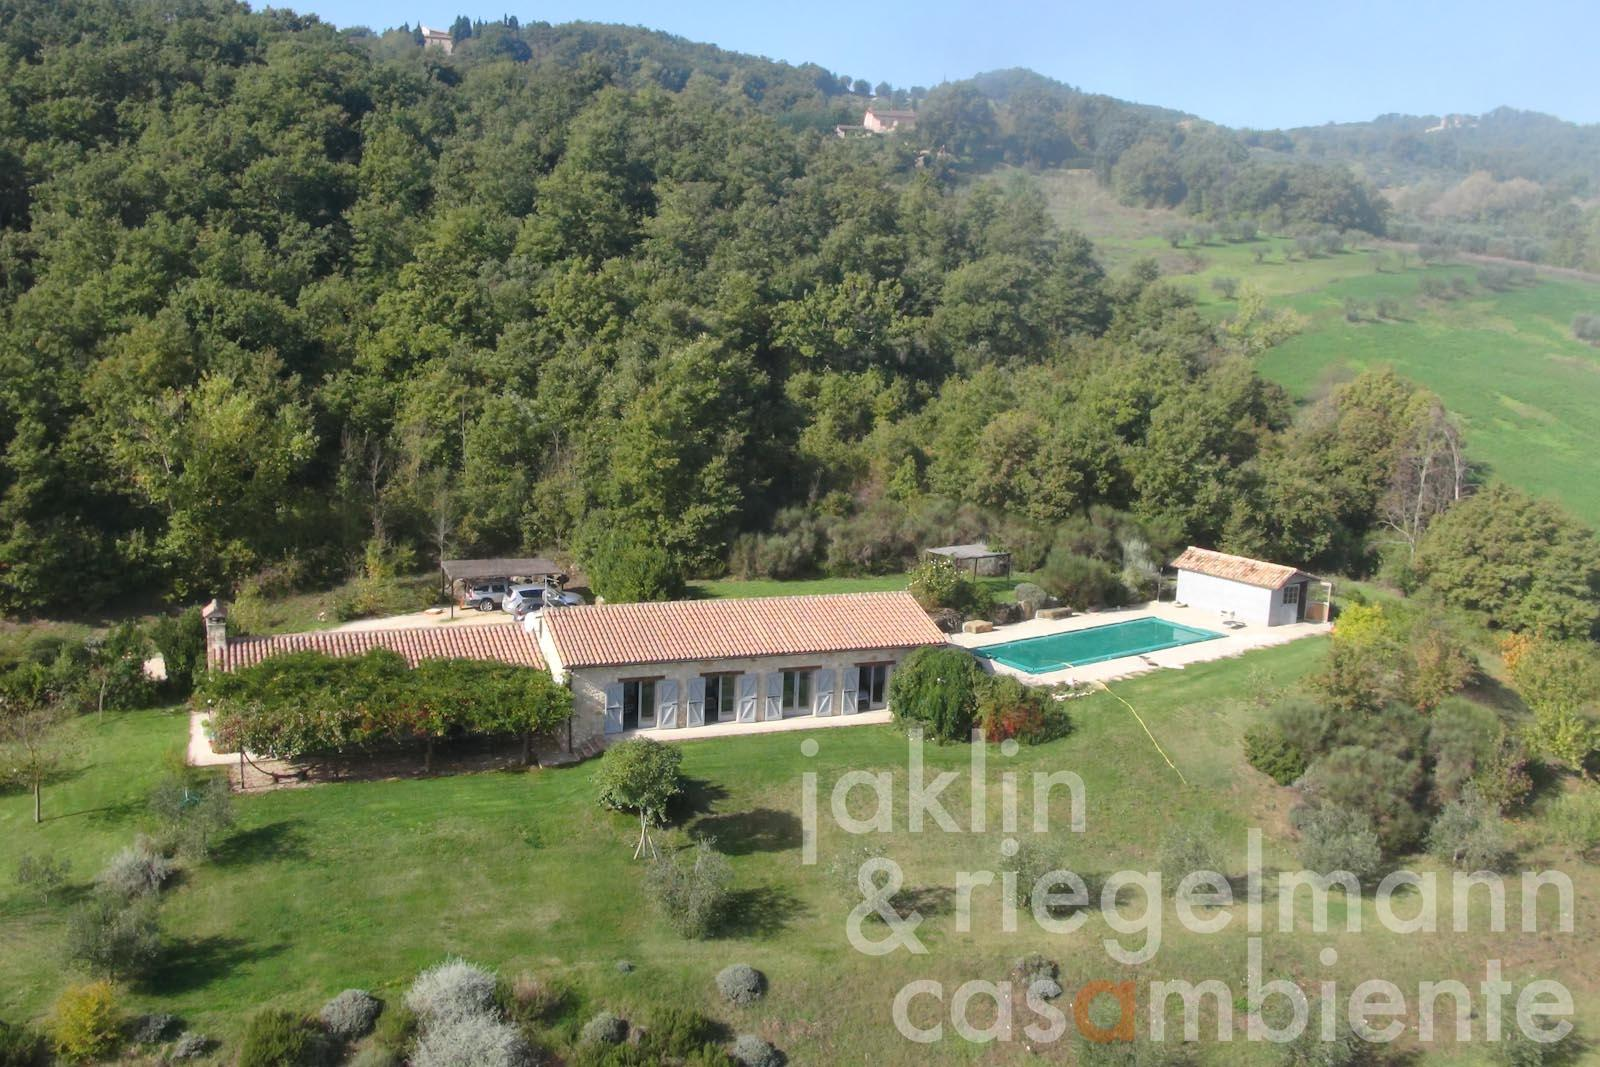 The modern country house for sale close to Todi in Umbria with pool and olive grove